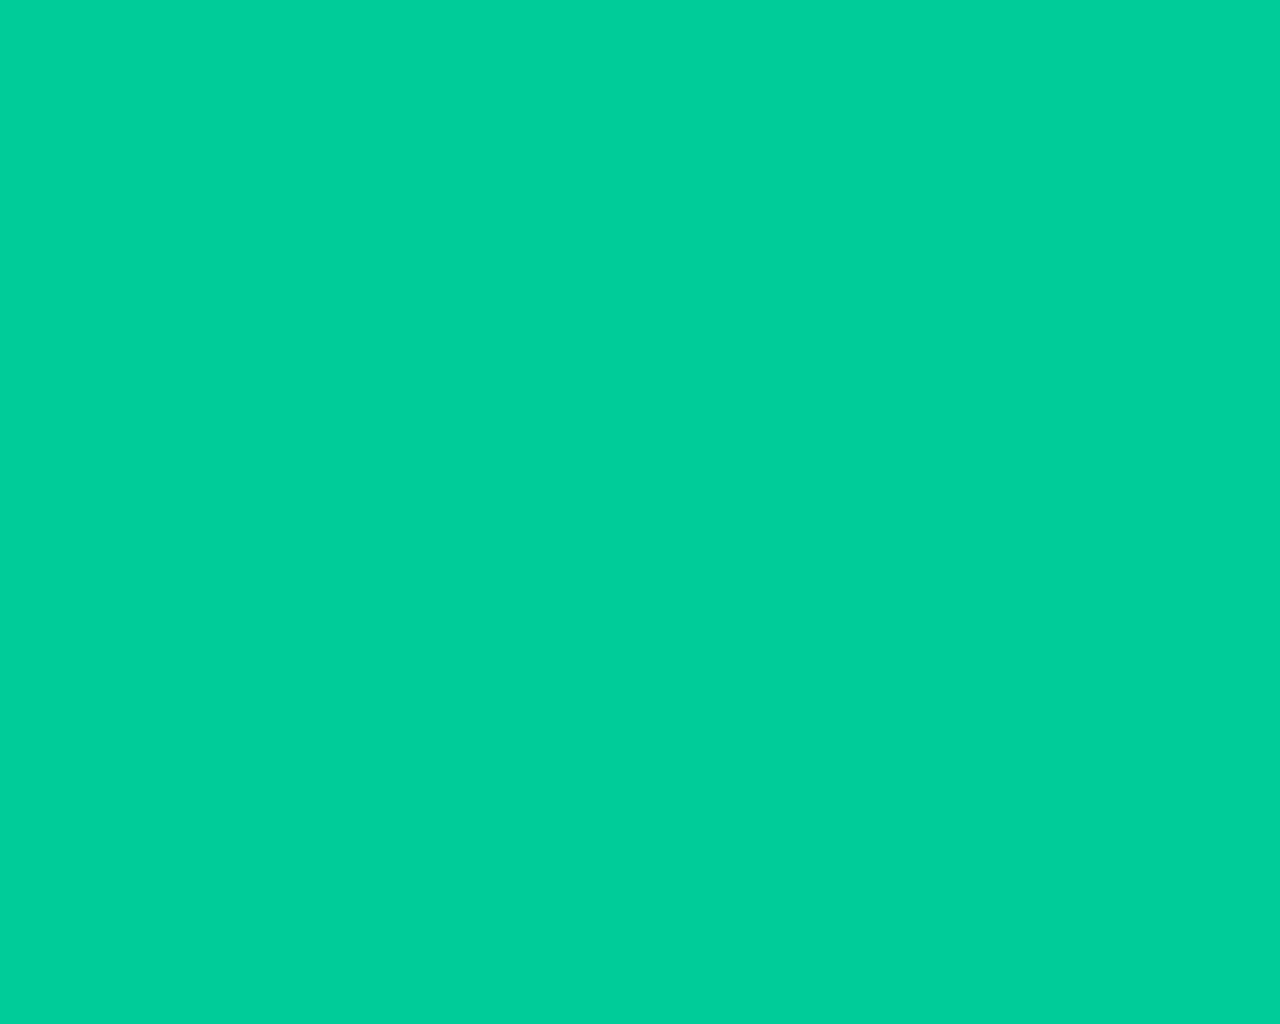 1280x1024 Caribbean Green Solid Color Background